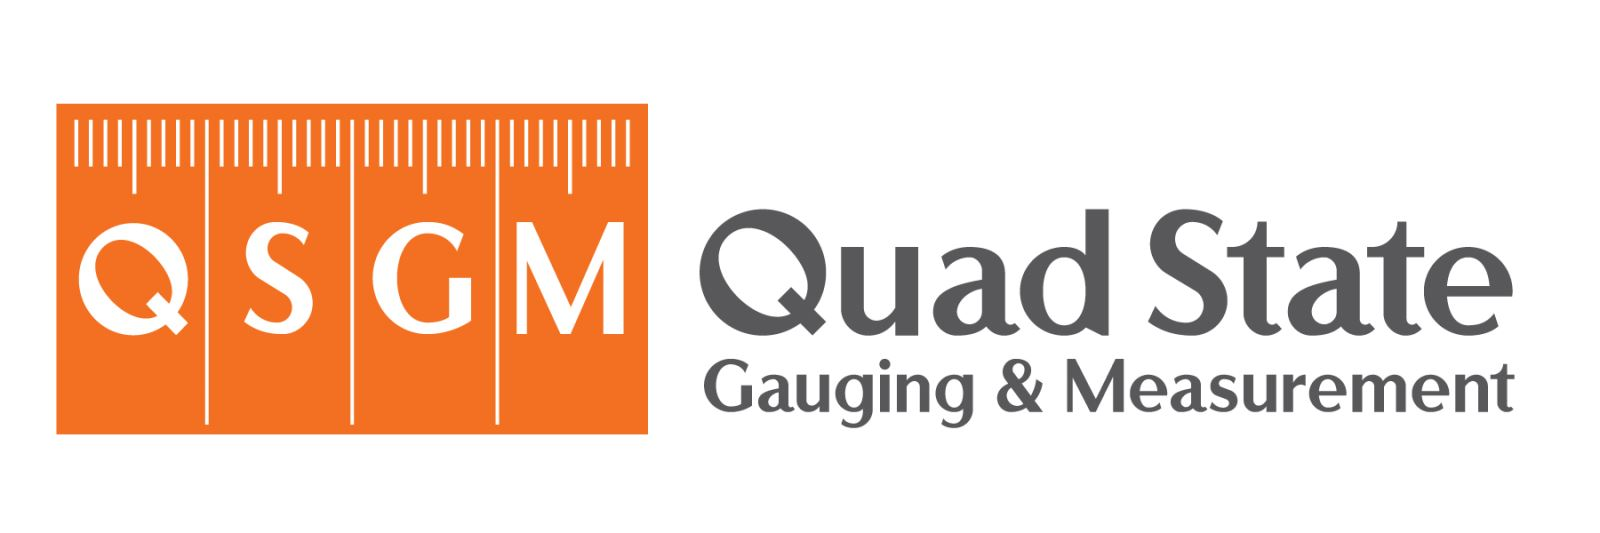 Quad State Gauging & Measurement